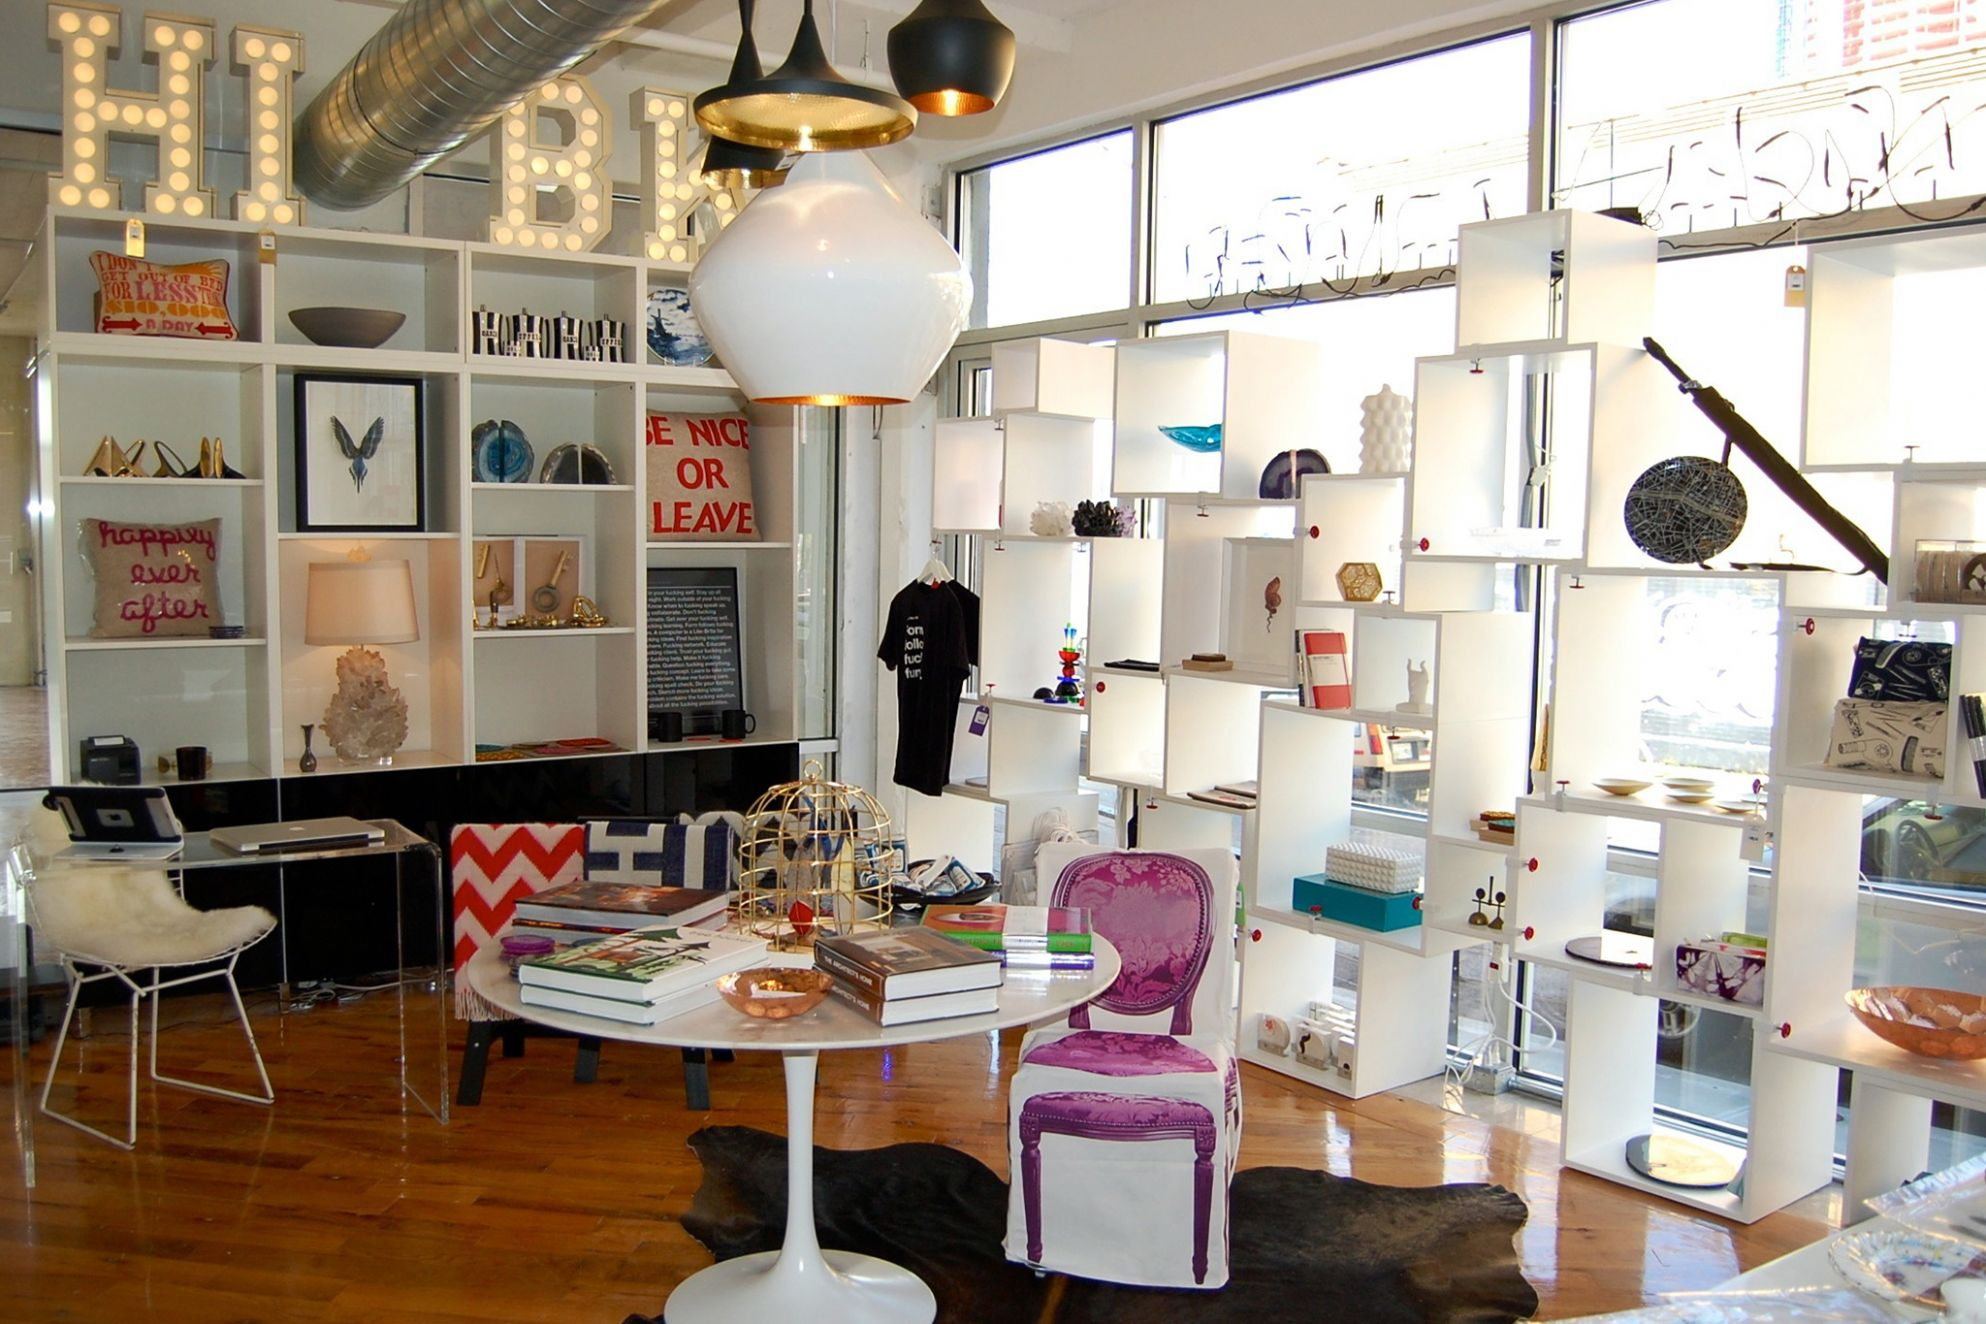 Home decor stores in NYC for decorating ideas and home furnishings - home decor retailers